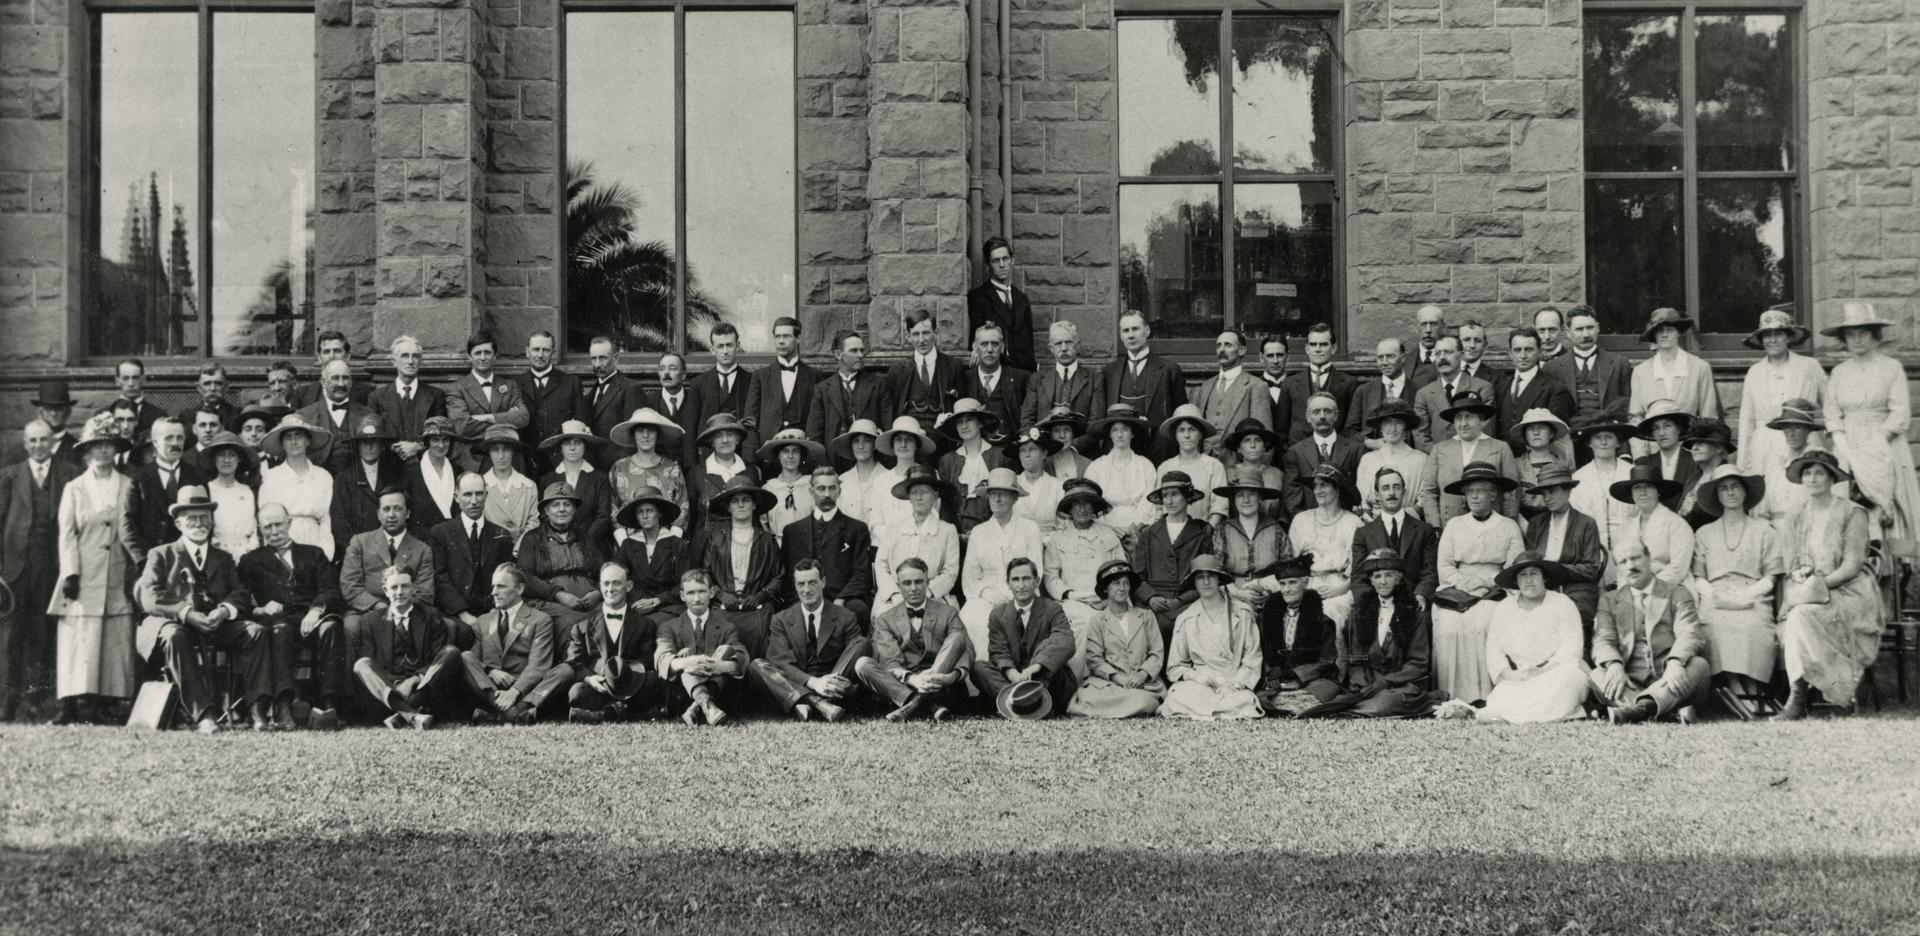 Extension Board and Workers' Education Association Conference, 1922